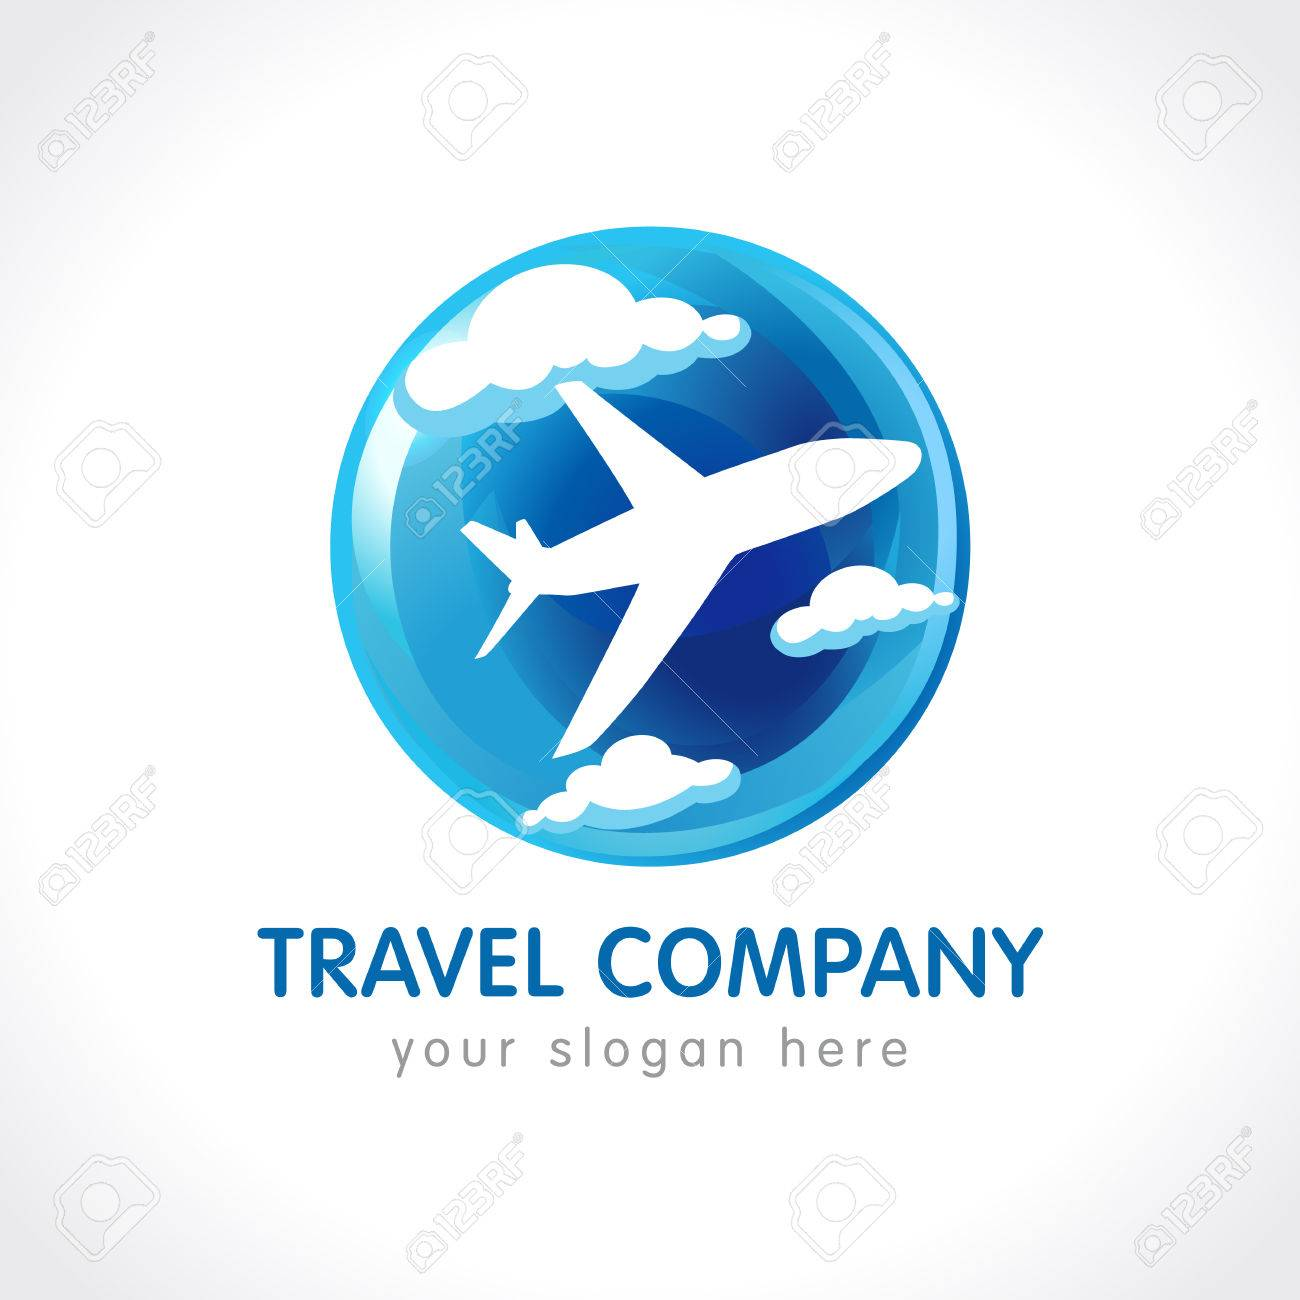 abab908d9 Travel Company Logo. World Travel Airplane Abstract Vector Icon ...